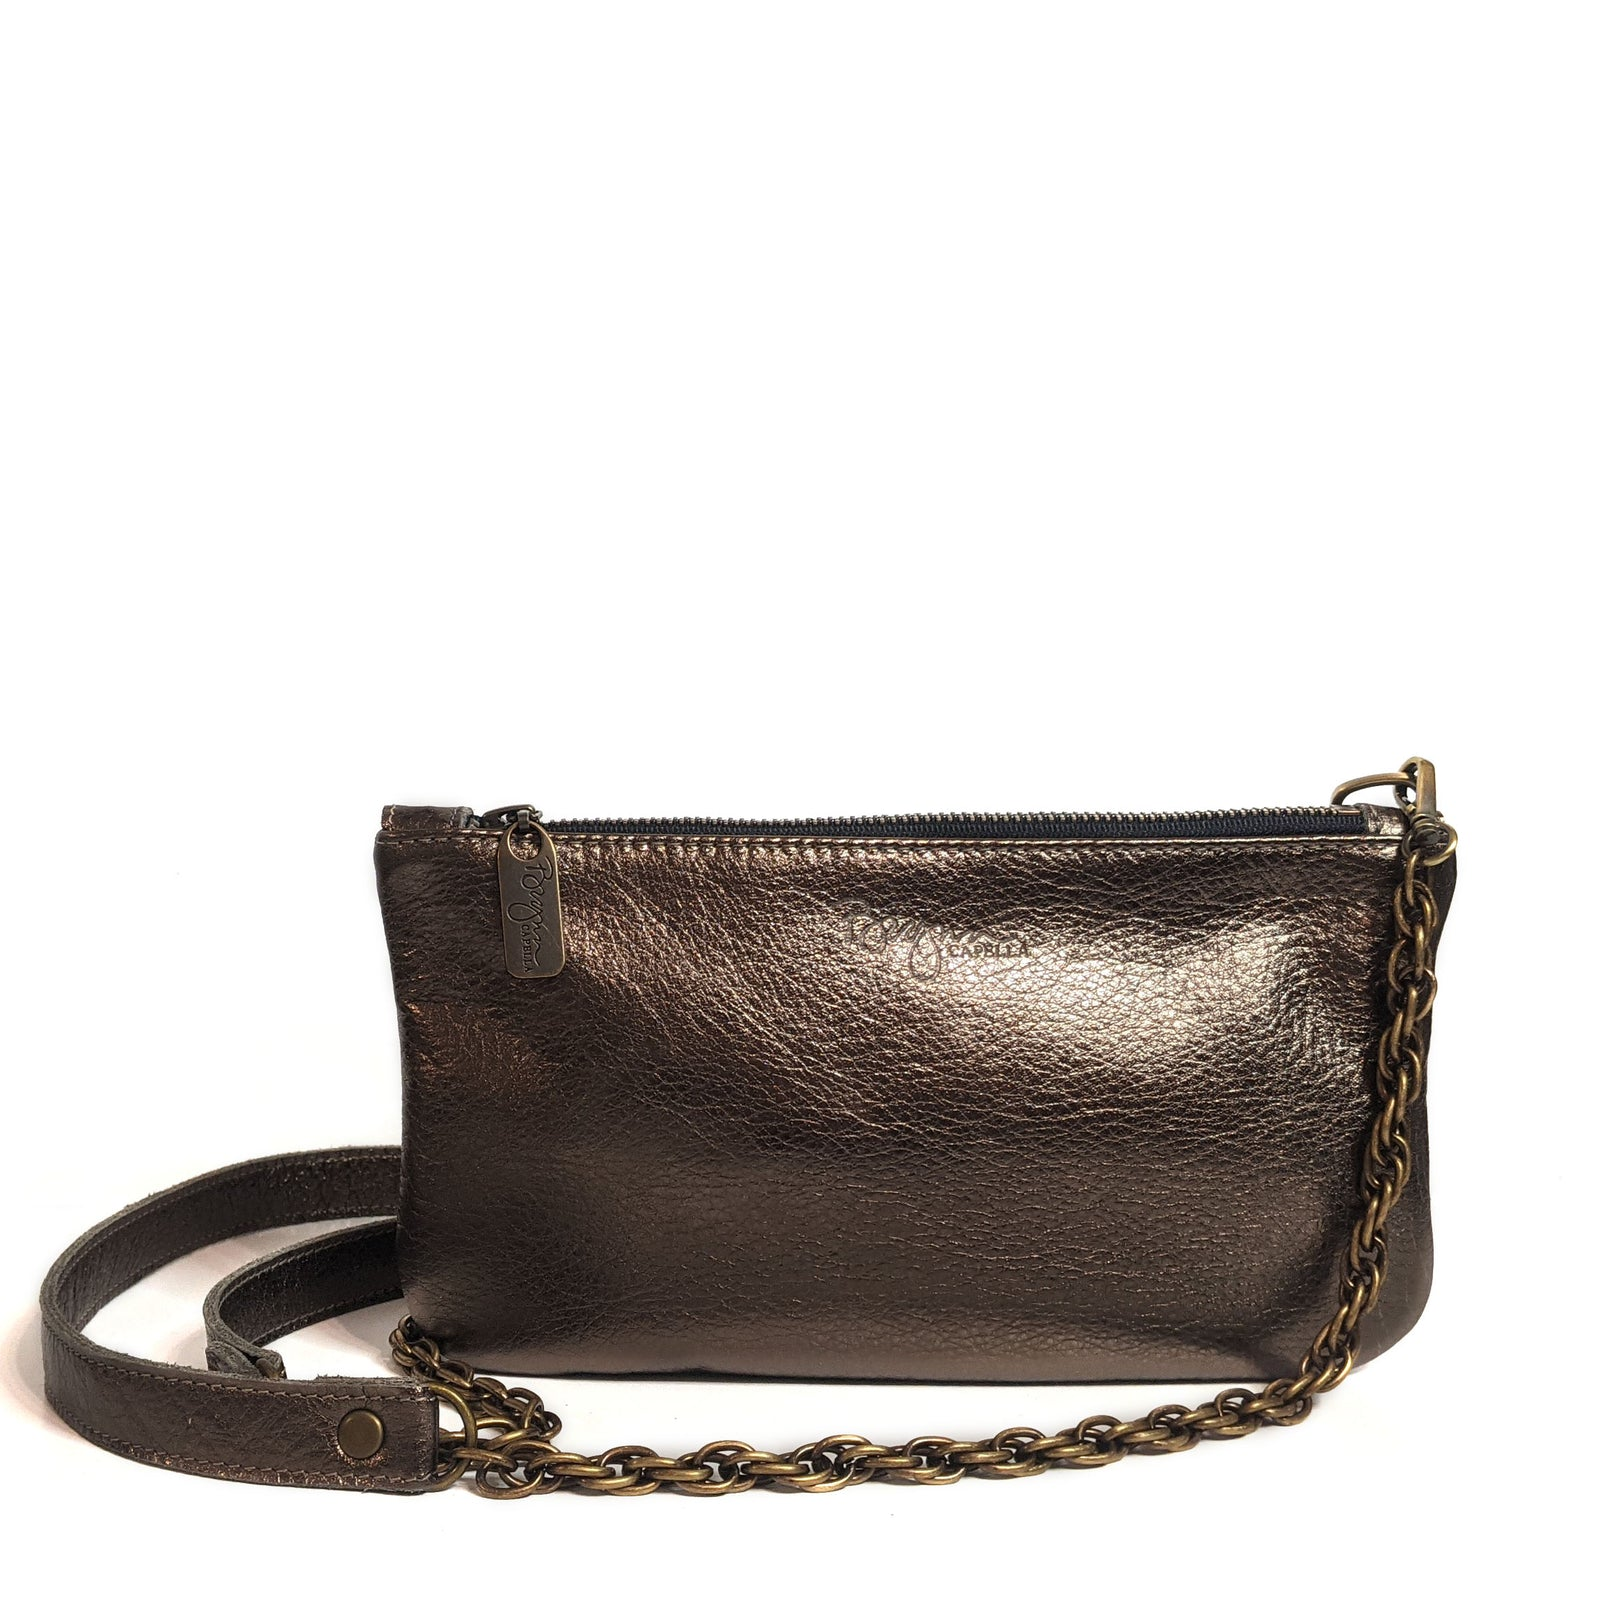 Mini Pewter Metallic Leather Crossbody, Made in the USA by Brynn Capella